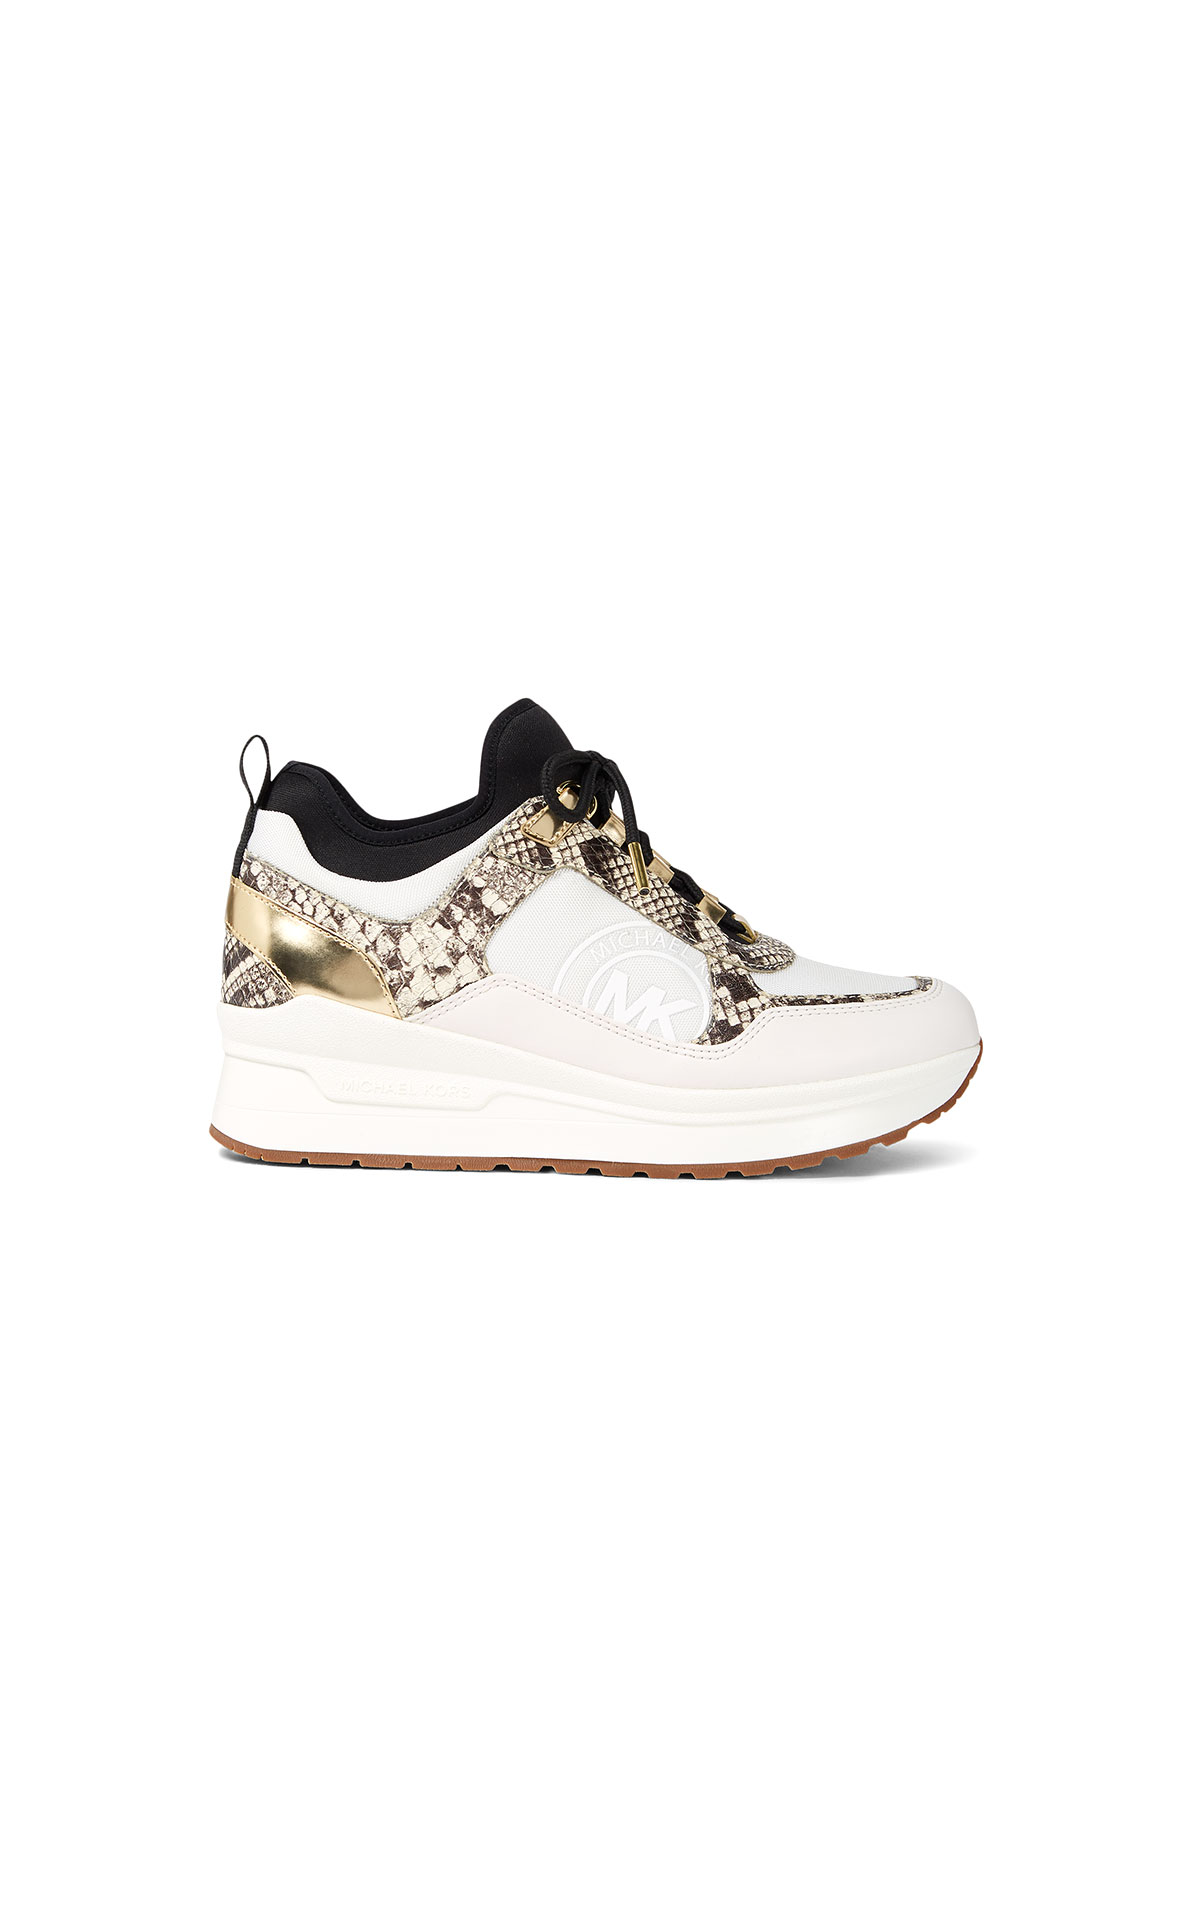 Michael Kors Lula trainer at The Bicester Village Shopping Collection